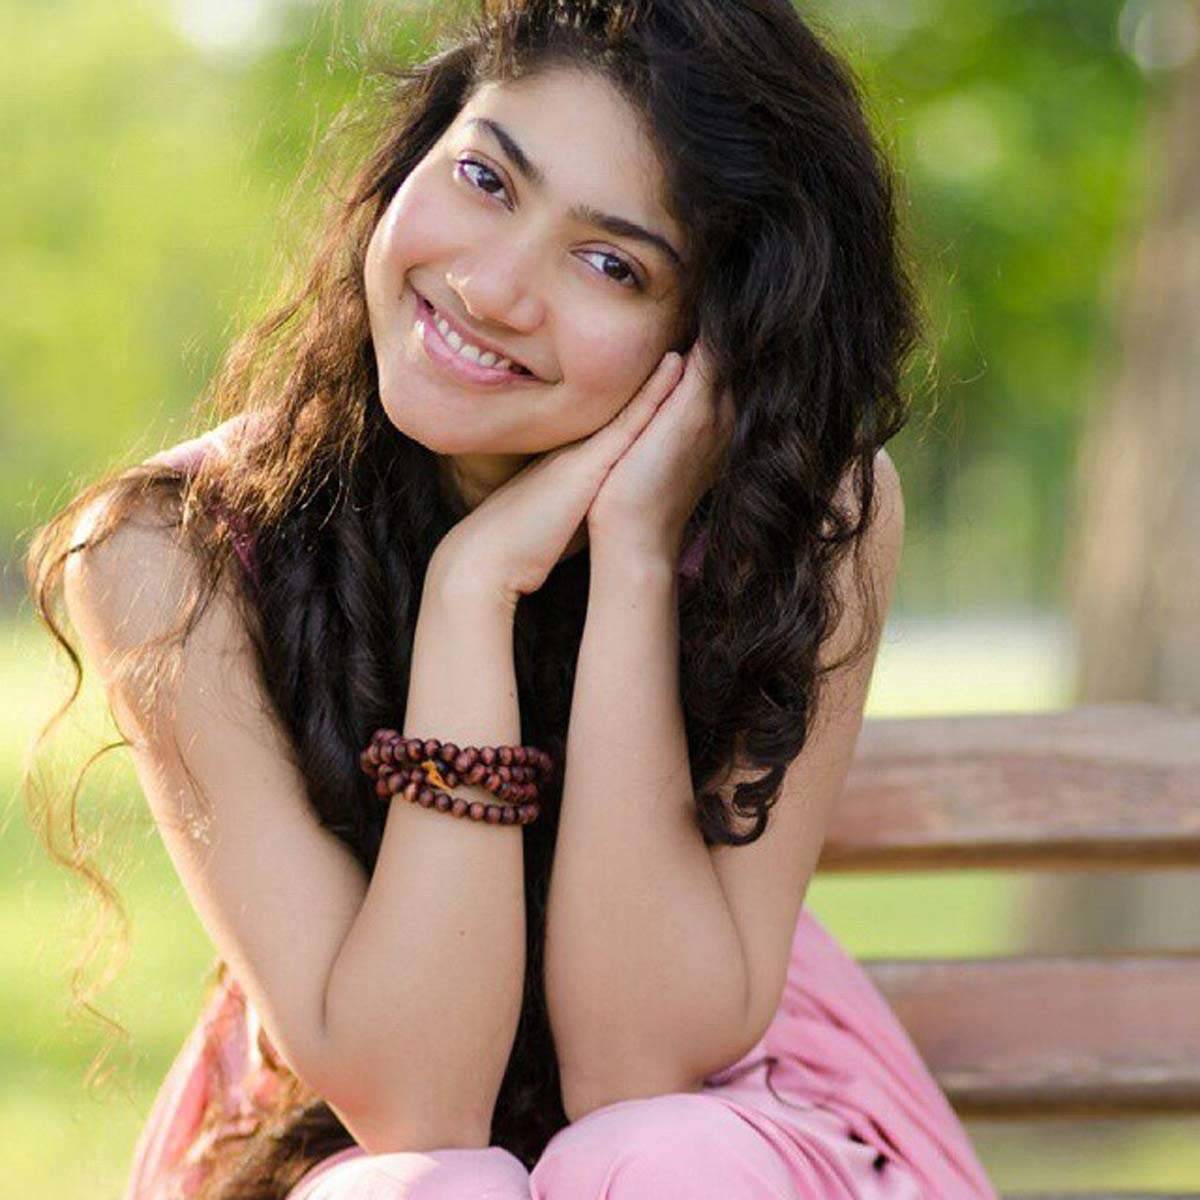 Will Sai Pallavi portray late Telugu actress Soundarya in biopic?